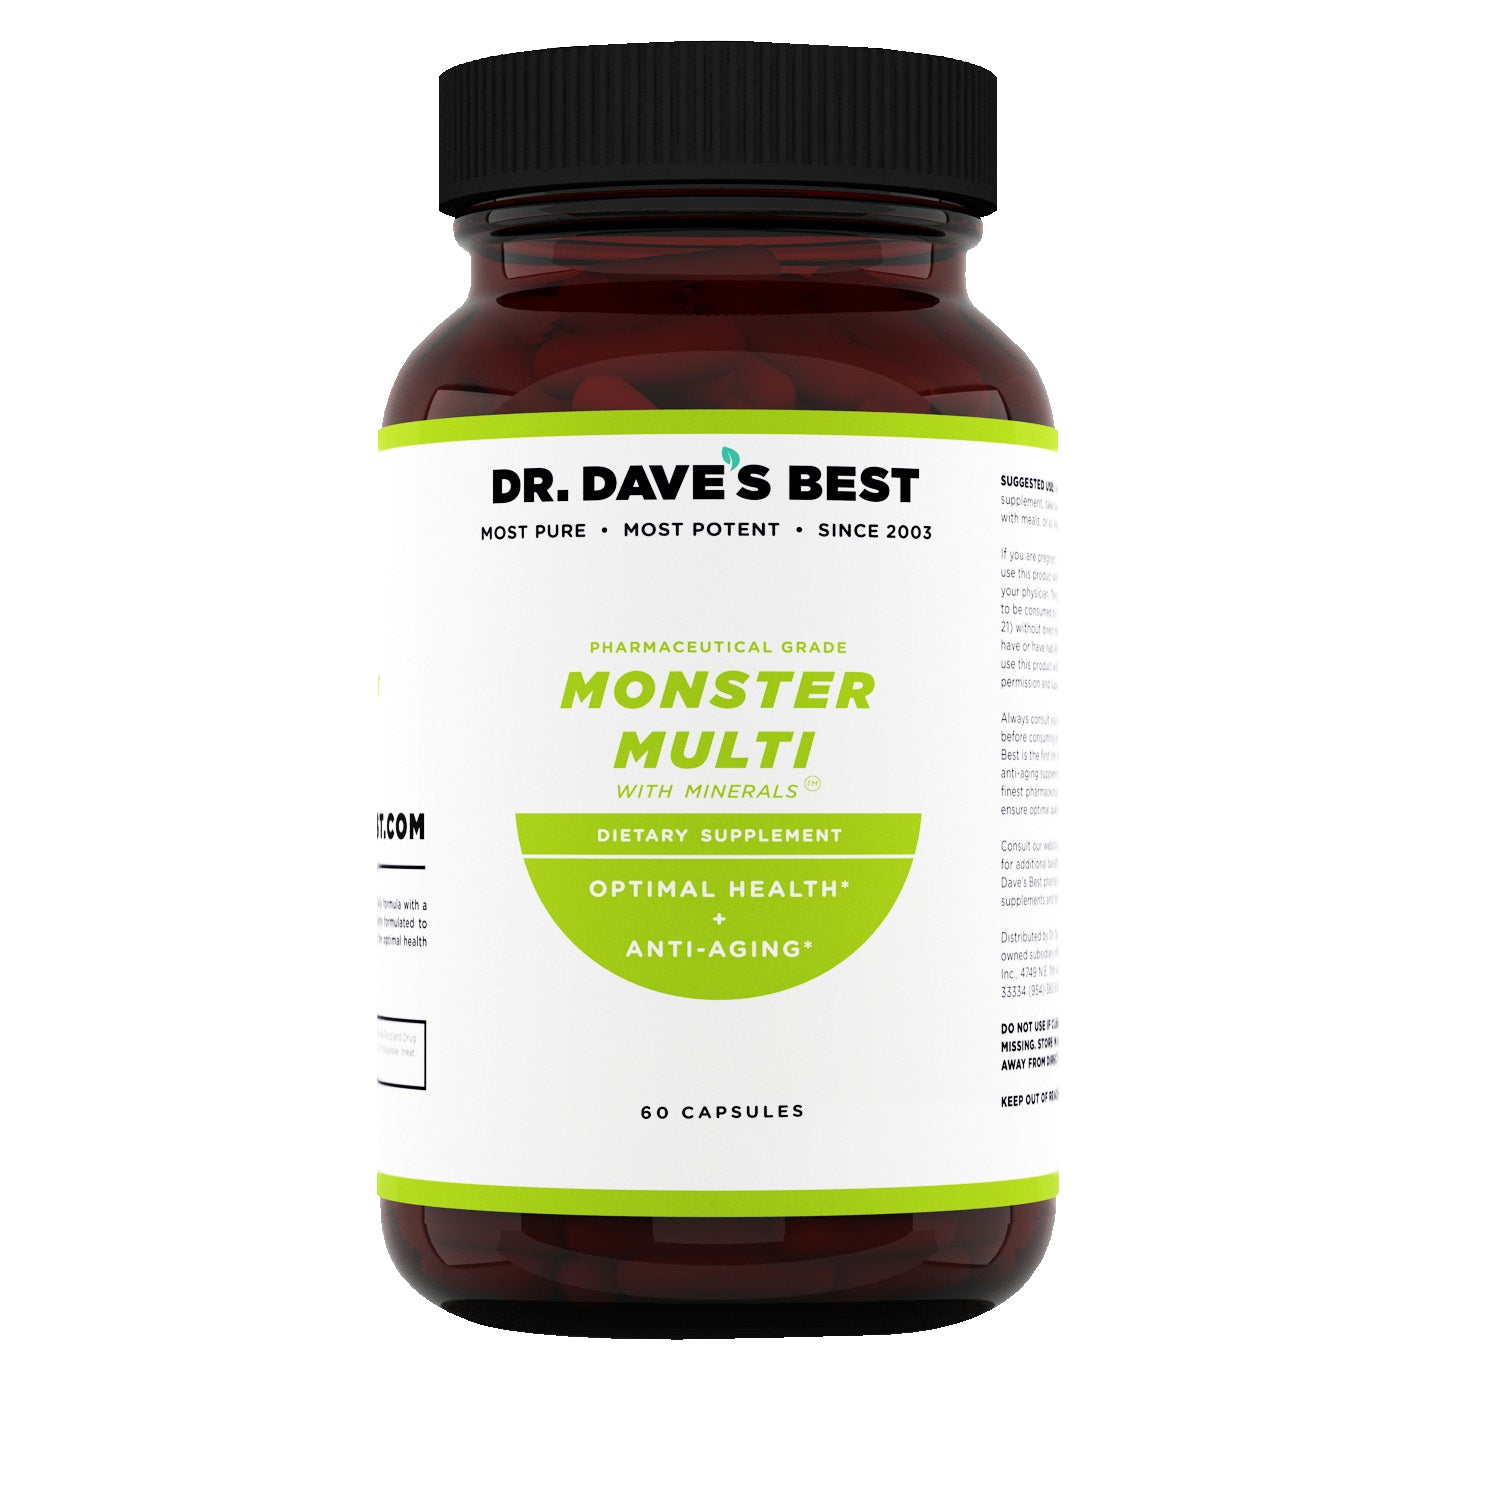 Dr. Dave's Best Monster Multi Vitamin